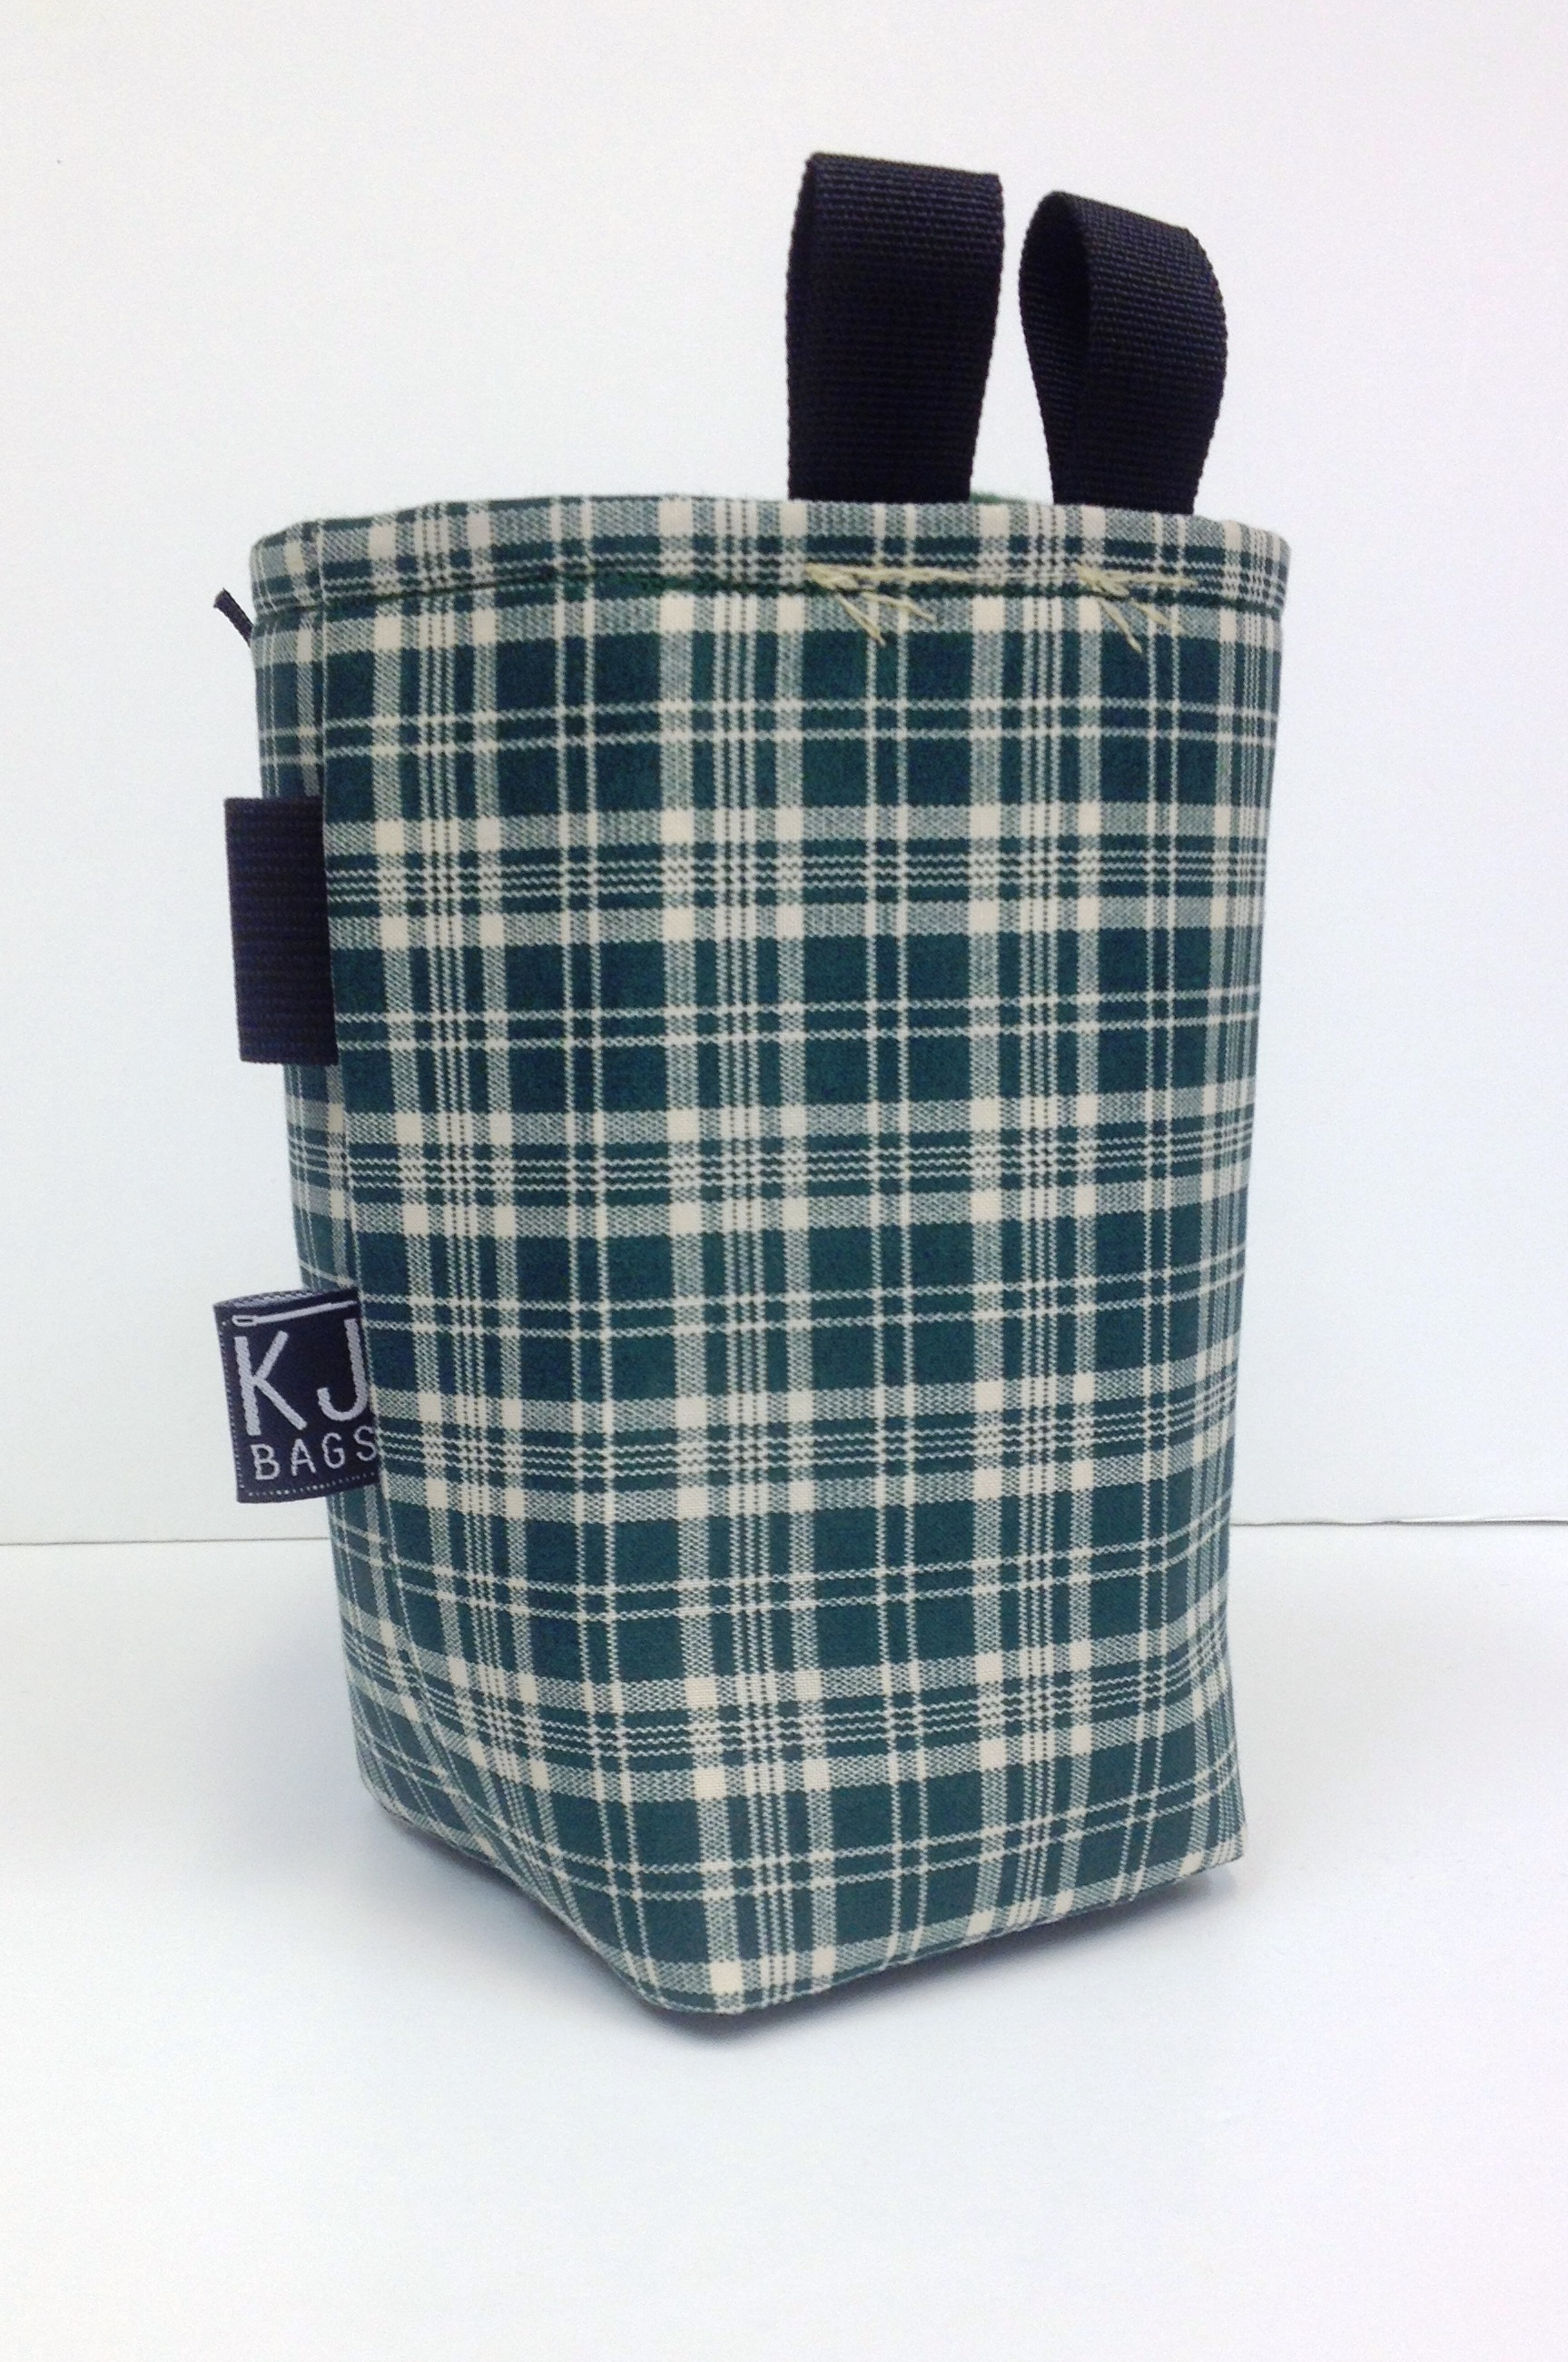 Forest Green Plaid Chalk Bag Kendal Jackson Bags Tote Photo May 22 9 18 01 Am